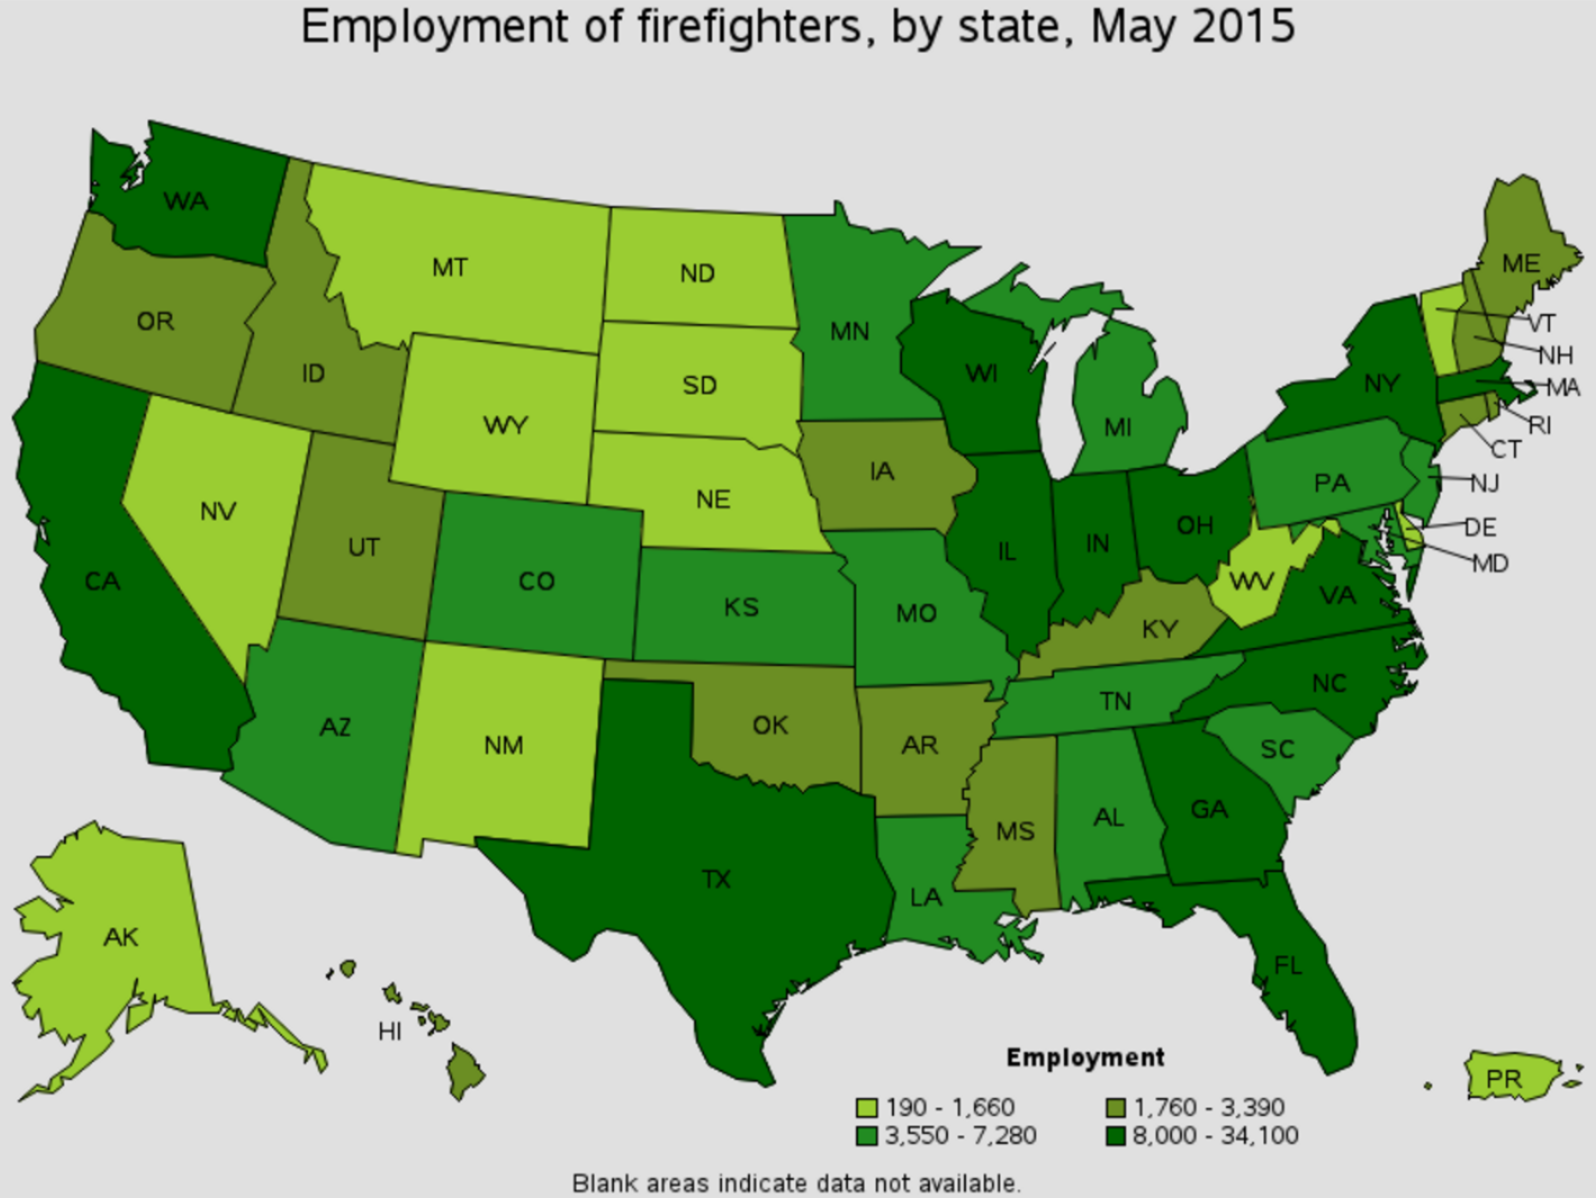 firefighter job outlook by state Holden Massachusetts